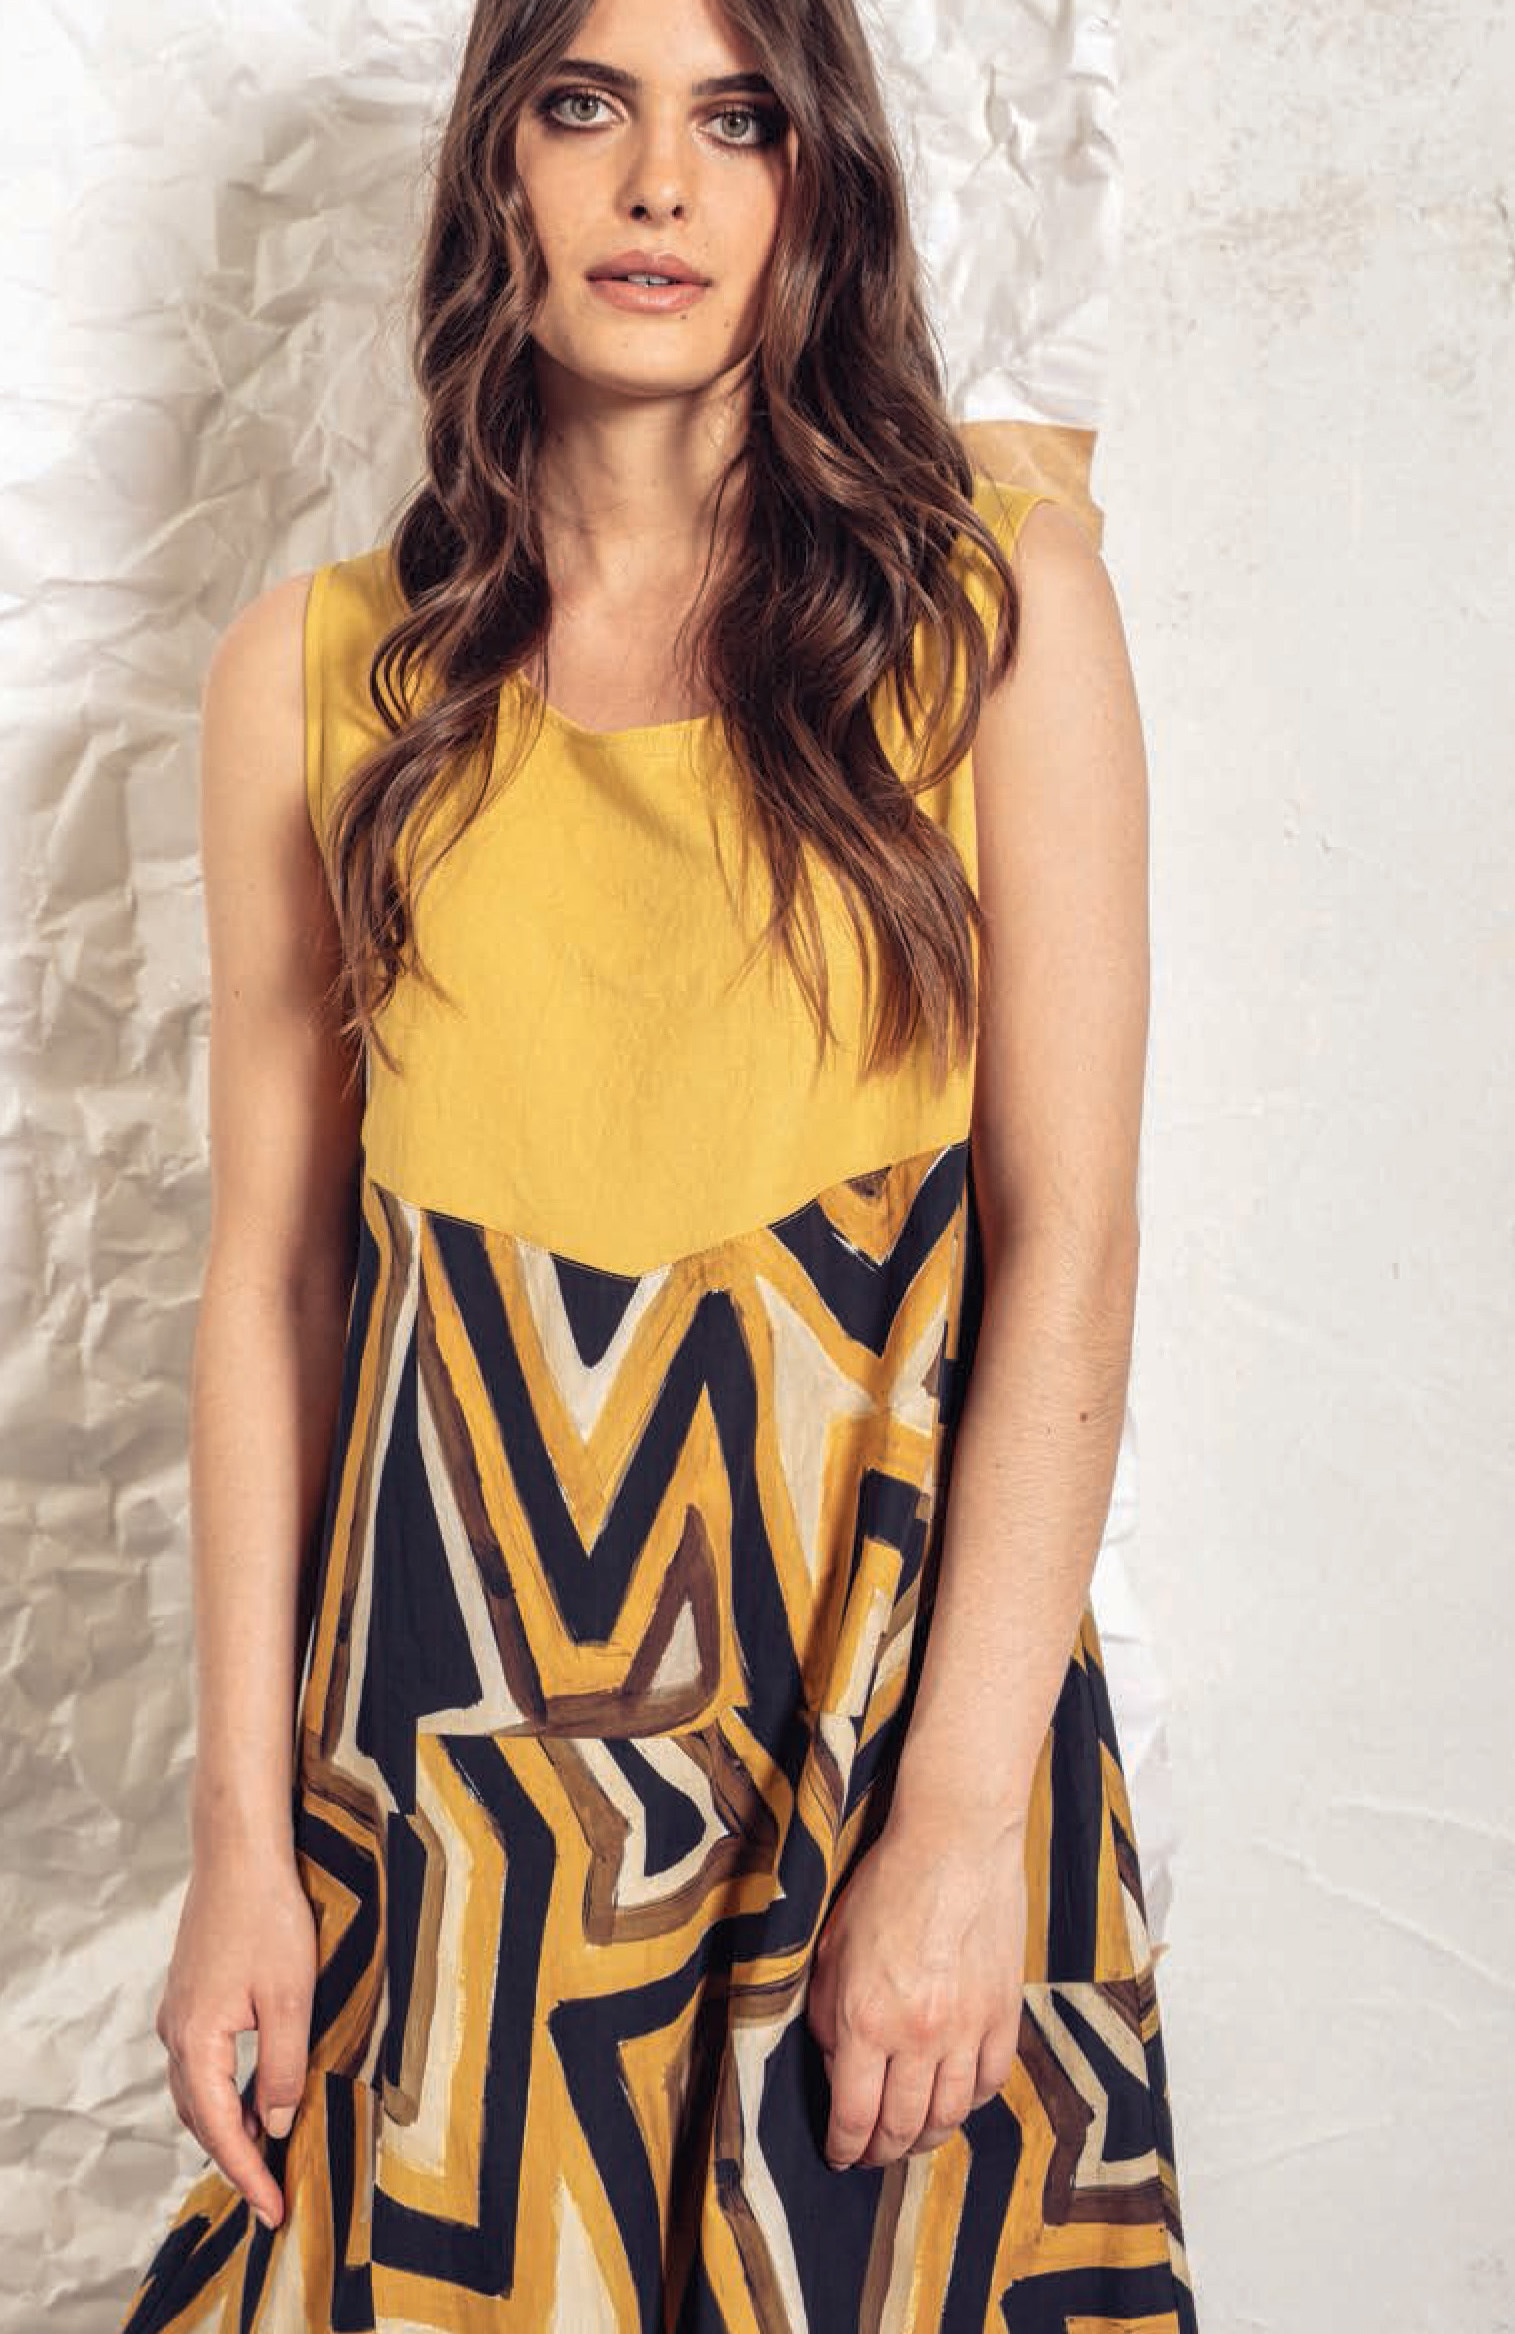 G!oze: Lemon Candy High Waisted Flared Dress/Tunic (More Top Colors!) G_FUTUR